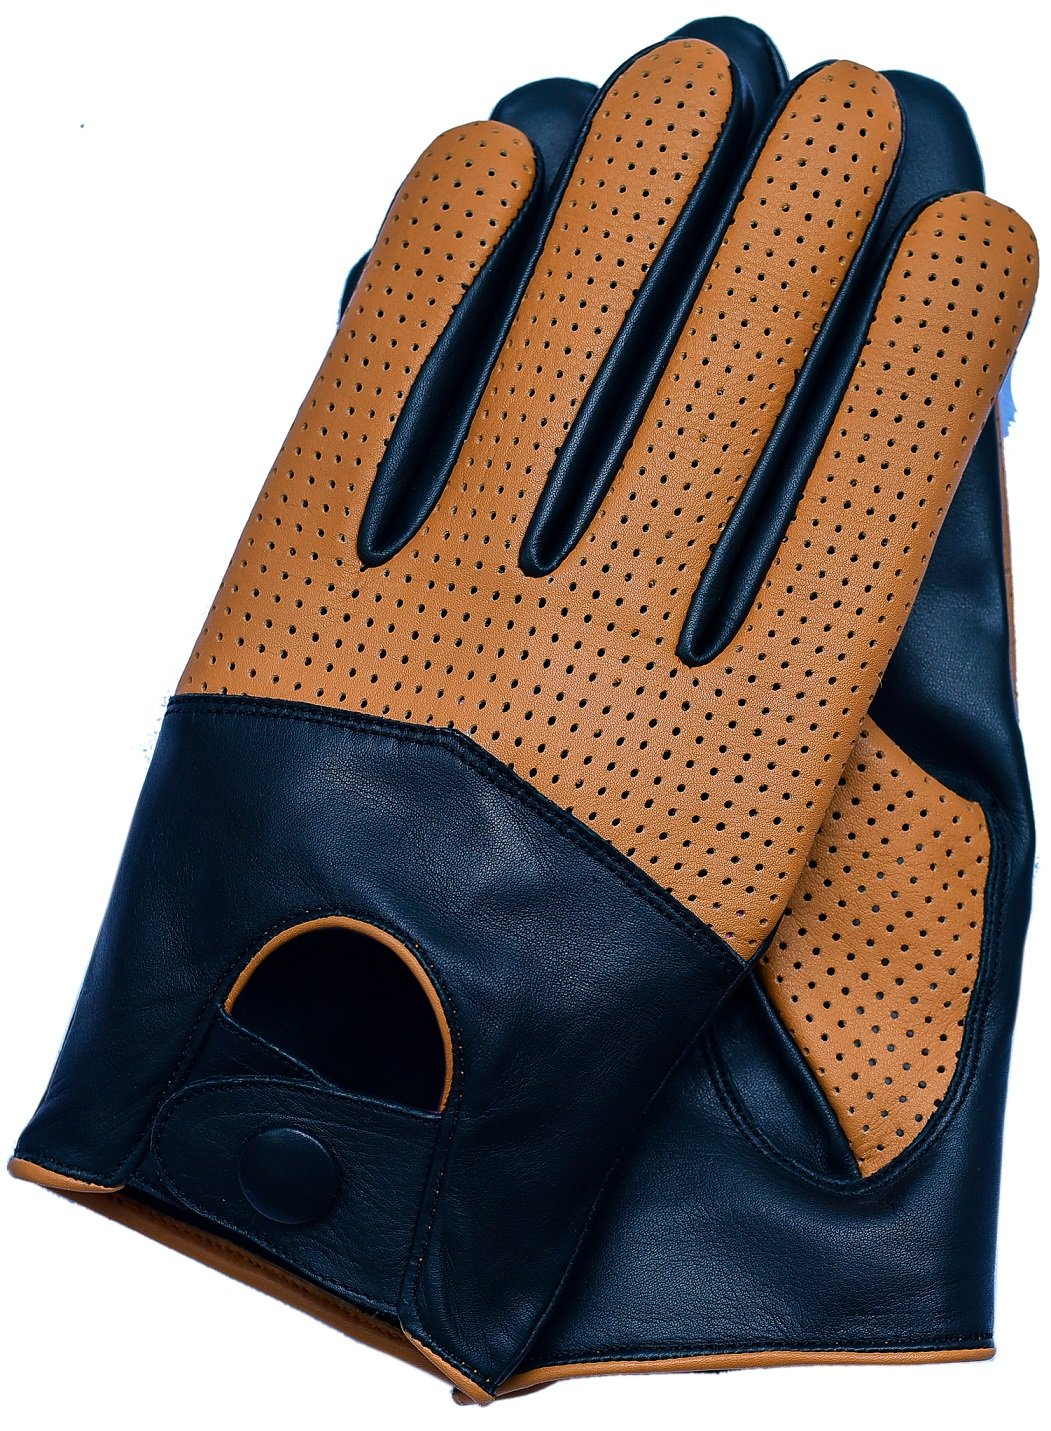 Riparo Men's Touchscreen Texting Half Mesh Perforated Summer Driving Motorcycle Leather Gloves (Small, Black/Cognac)